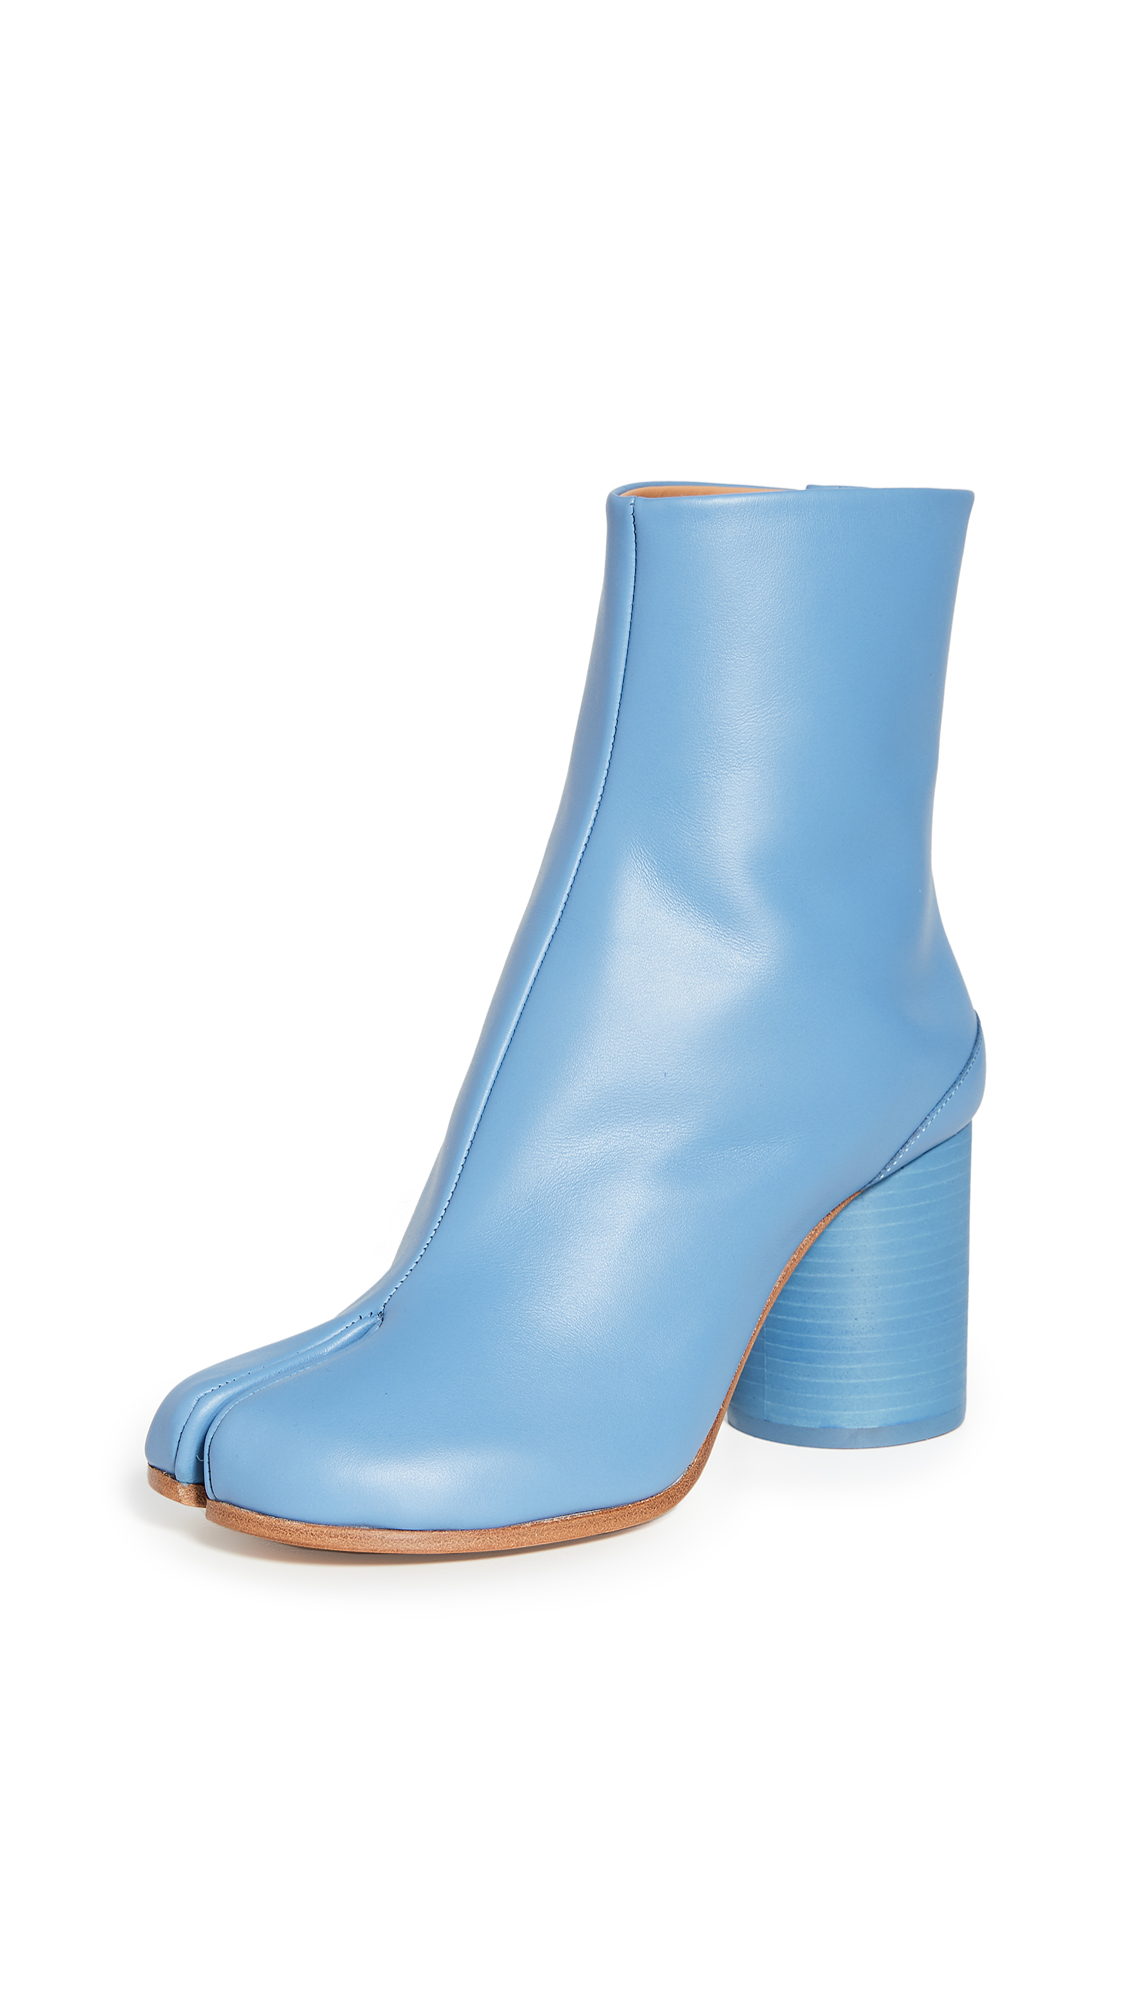 Buy Maison Margiela online - photo of Maison Margiela Tabi Booties